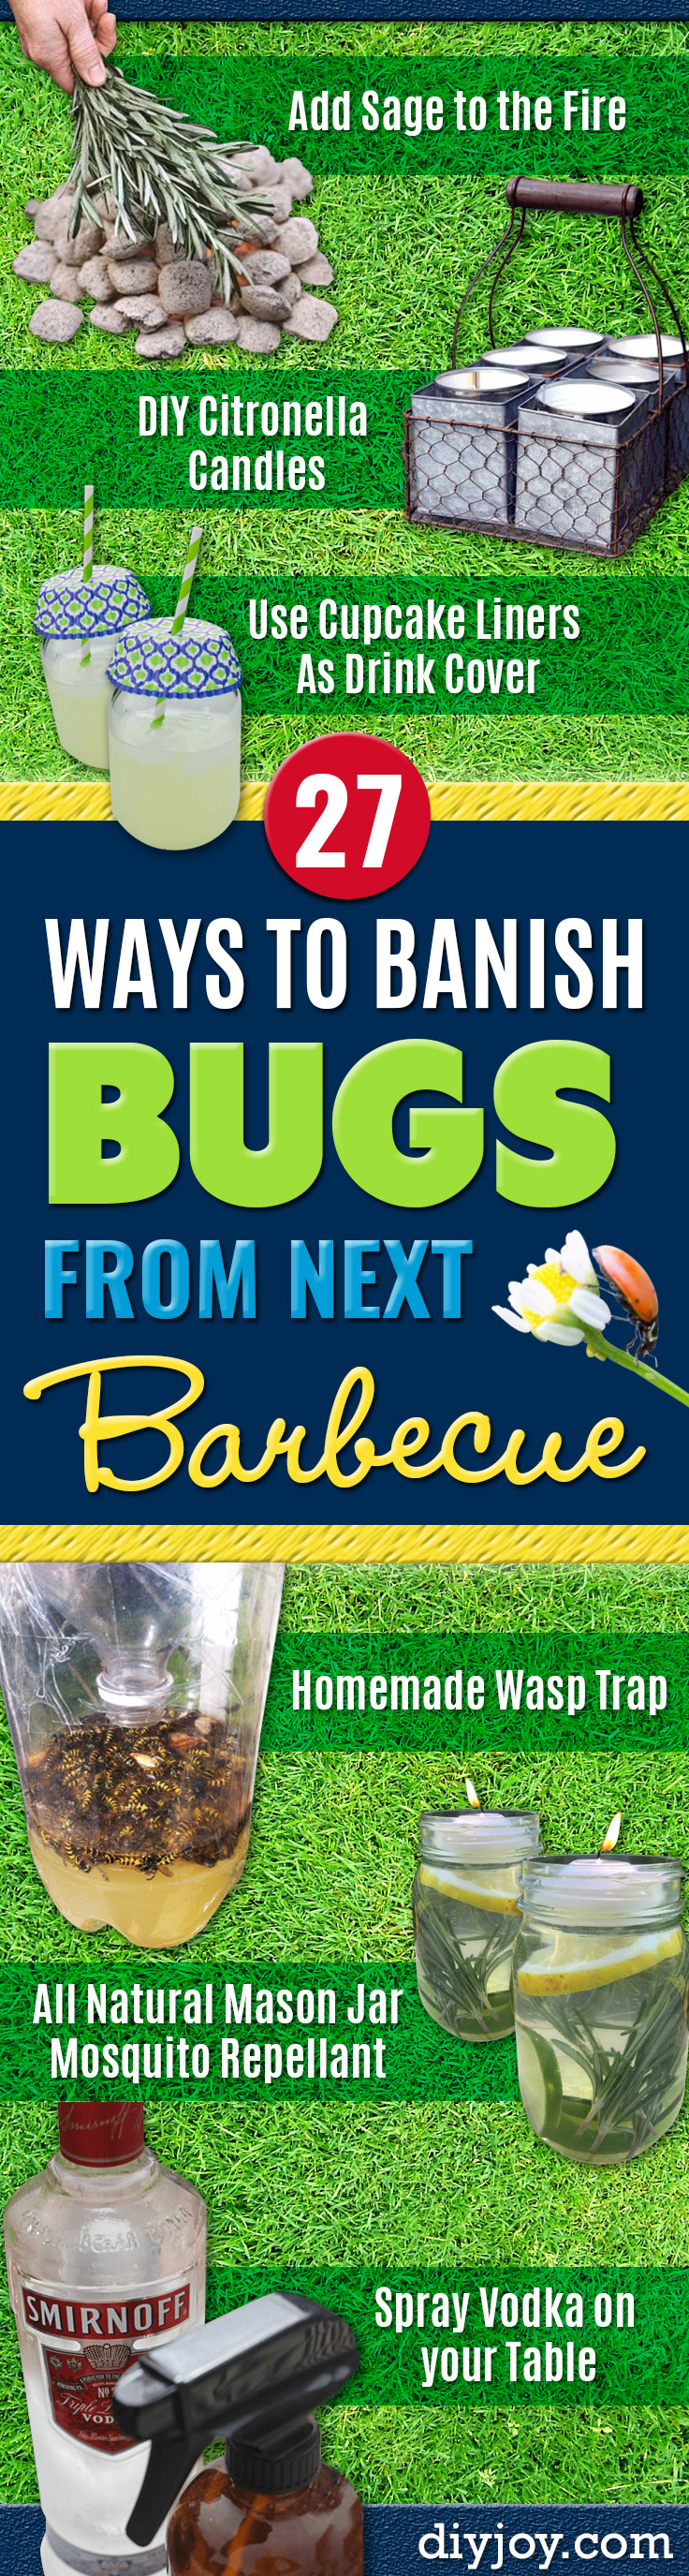 Best Ways to Get Rid of Bugs - Easy Tips and Tricks to Get Rid of Roaches, Ants, Fleas and Flies - DIY Ways To Exterminate and Elimiate Pests from Your Home and Yard, Picnics and Outdoor Barbecue http://diyjoy.com/ways-to-get-rid-of-bugs